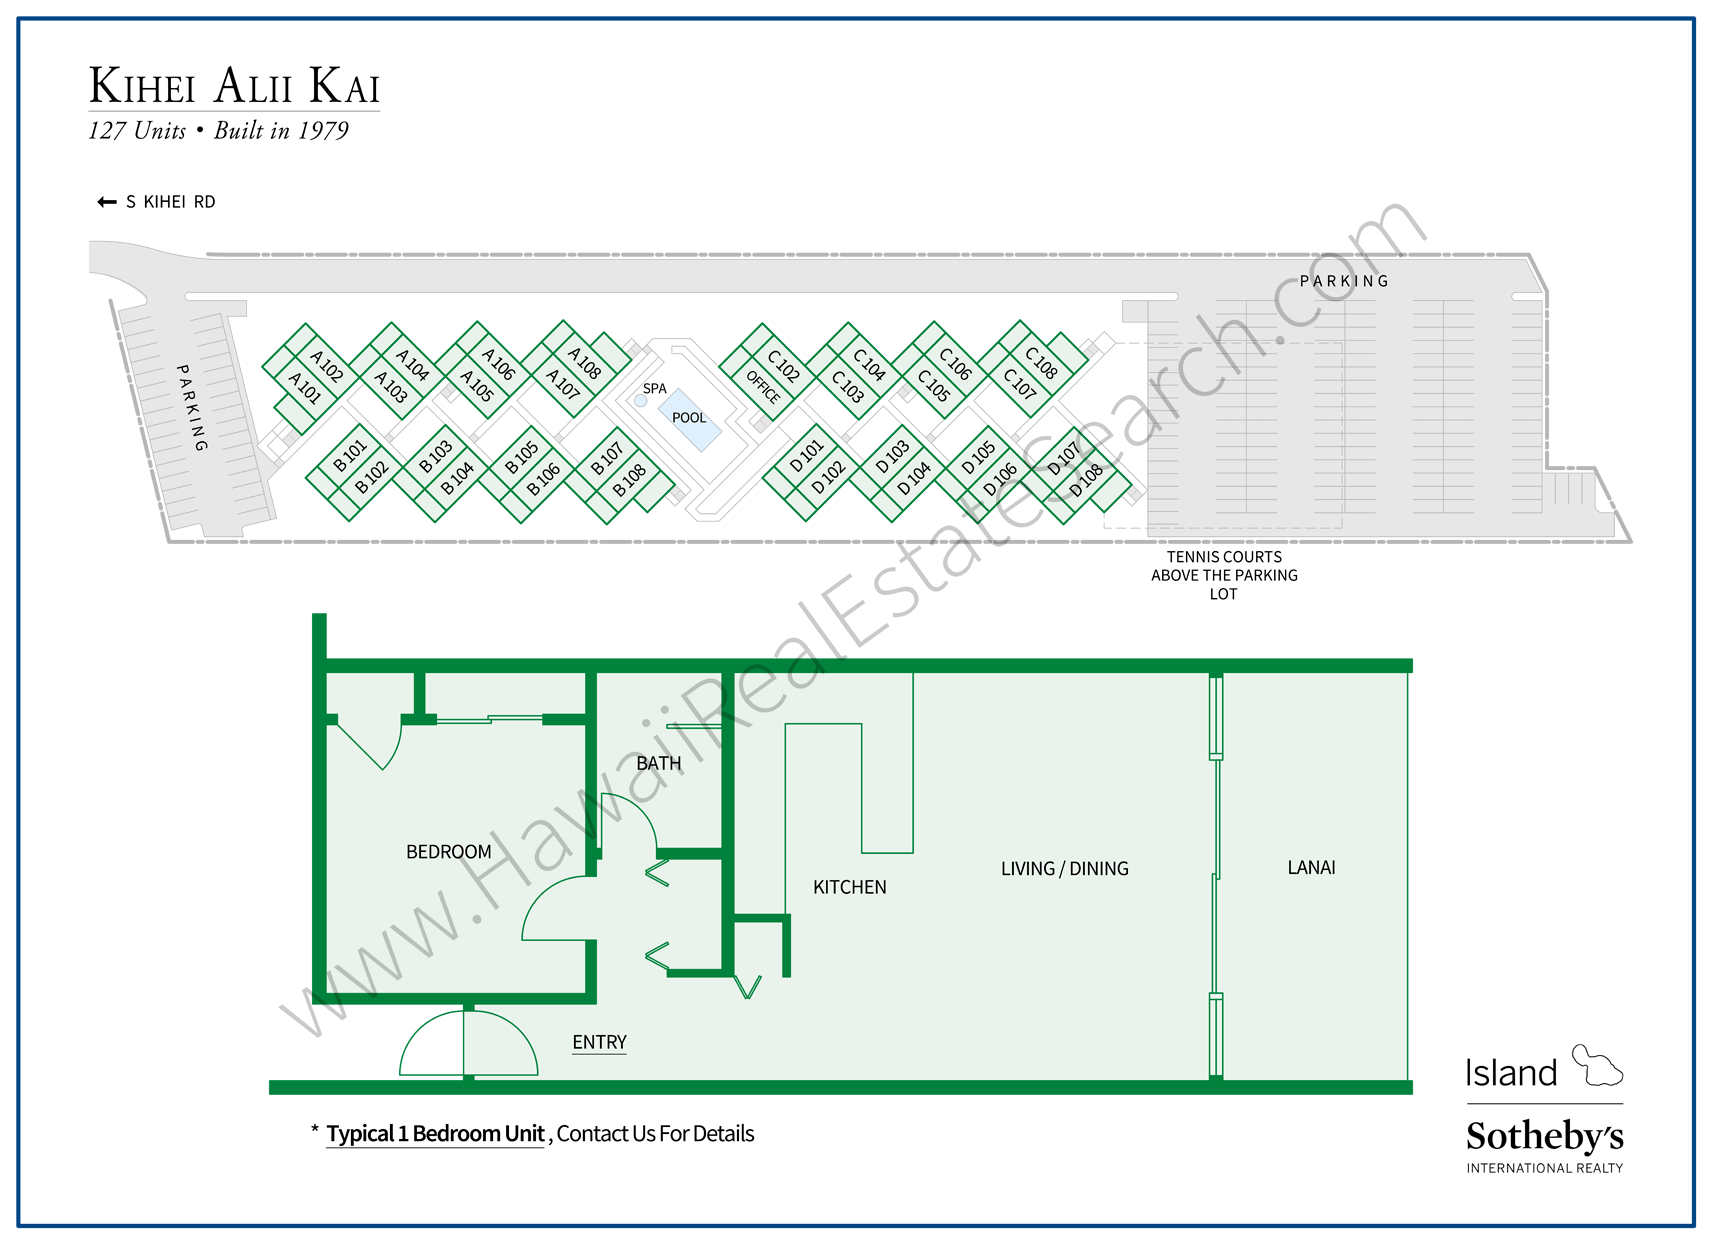 Kihei Alii Kai Property Map